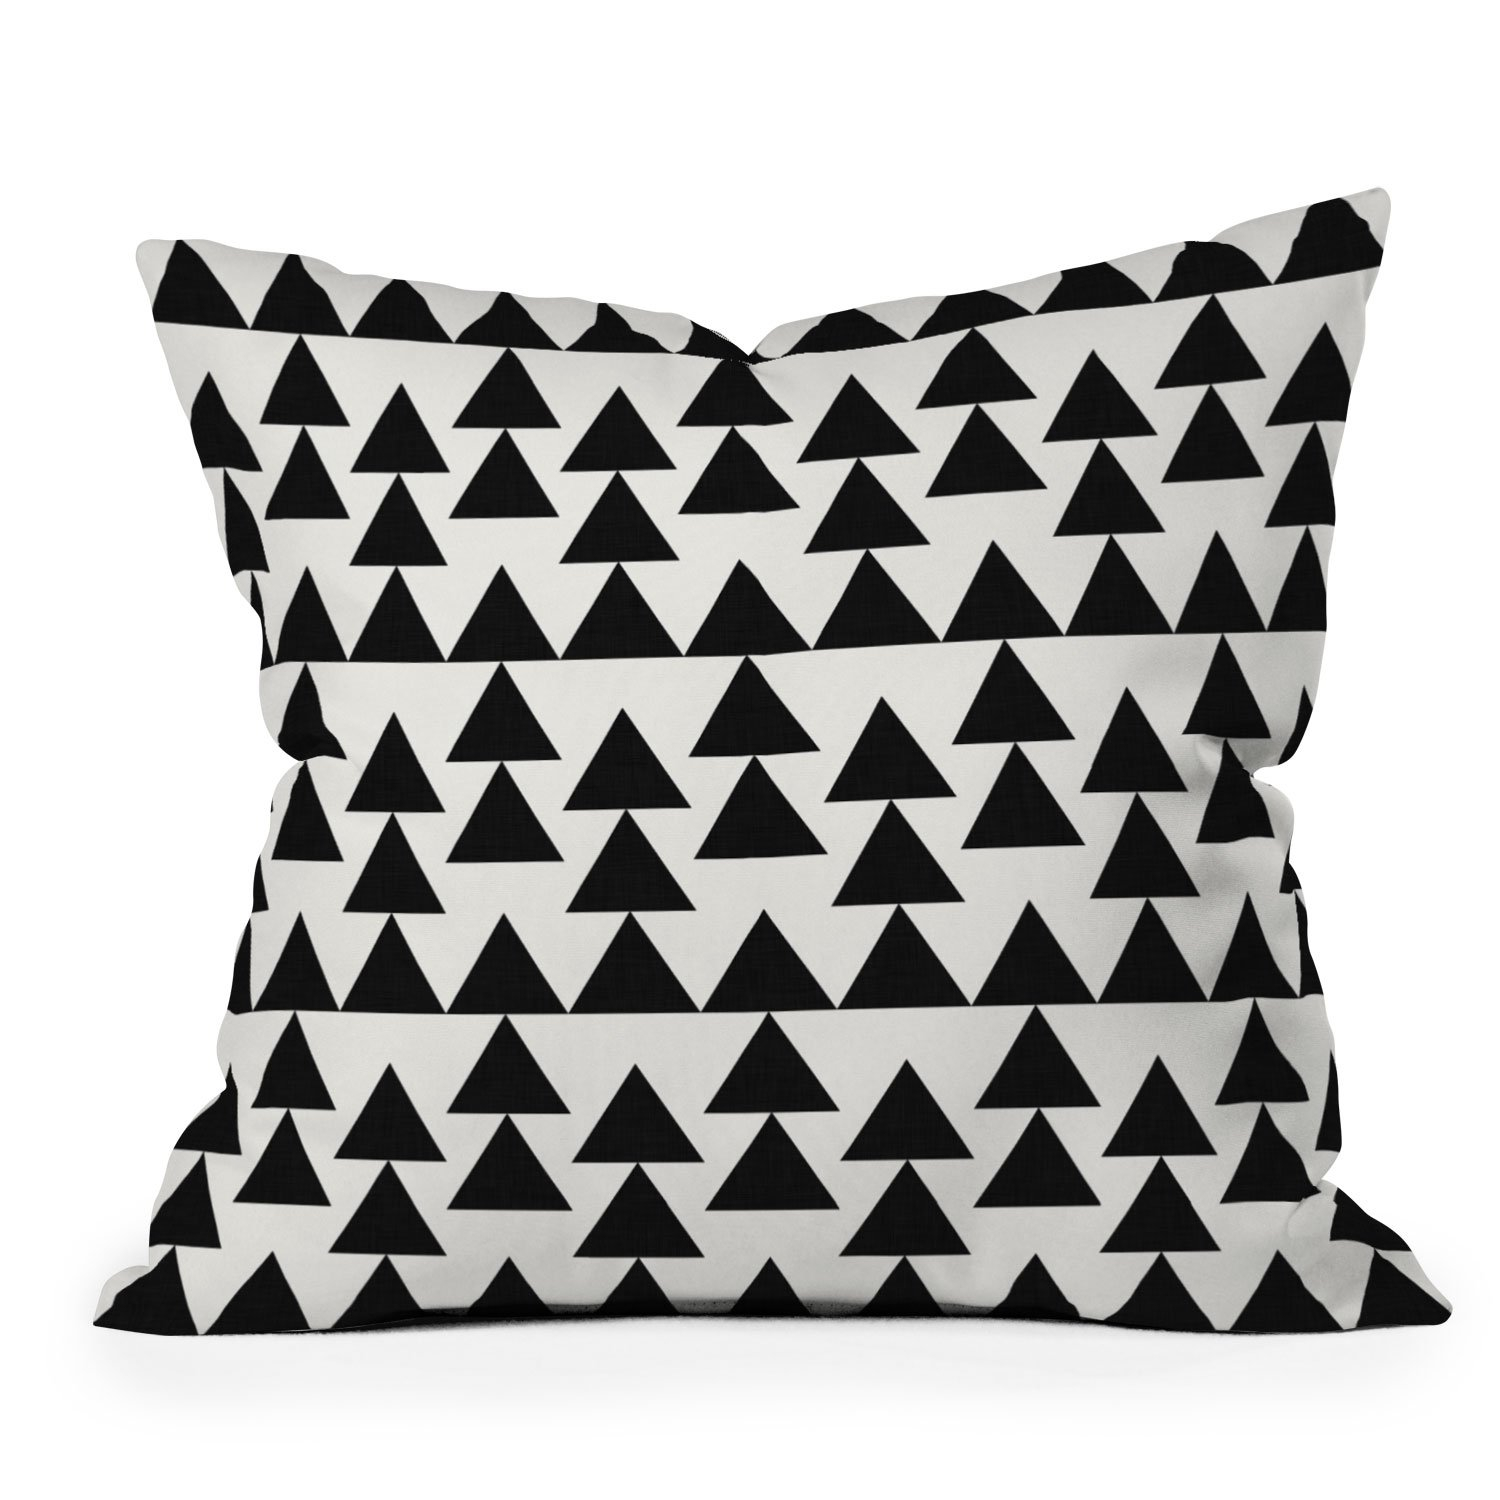 Image of Holli Zollinger Triangles Black Throw Pillow